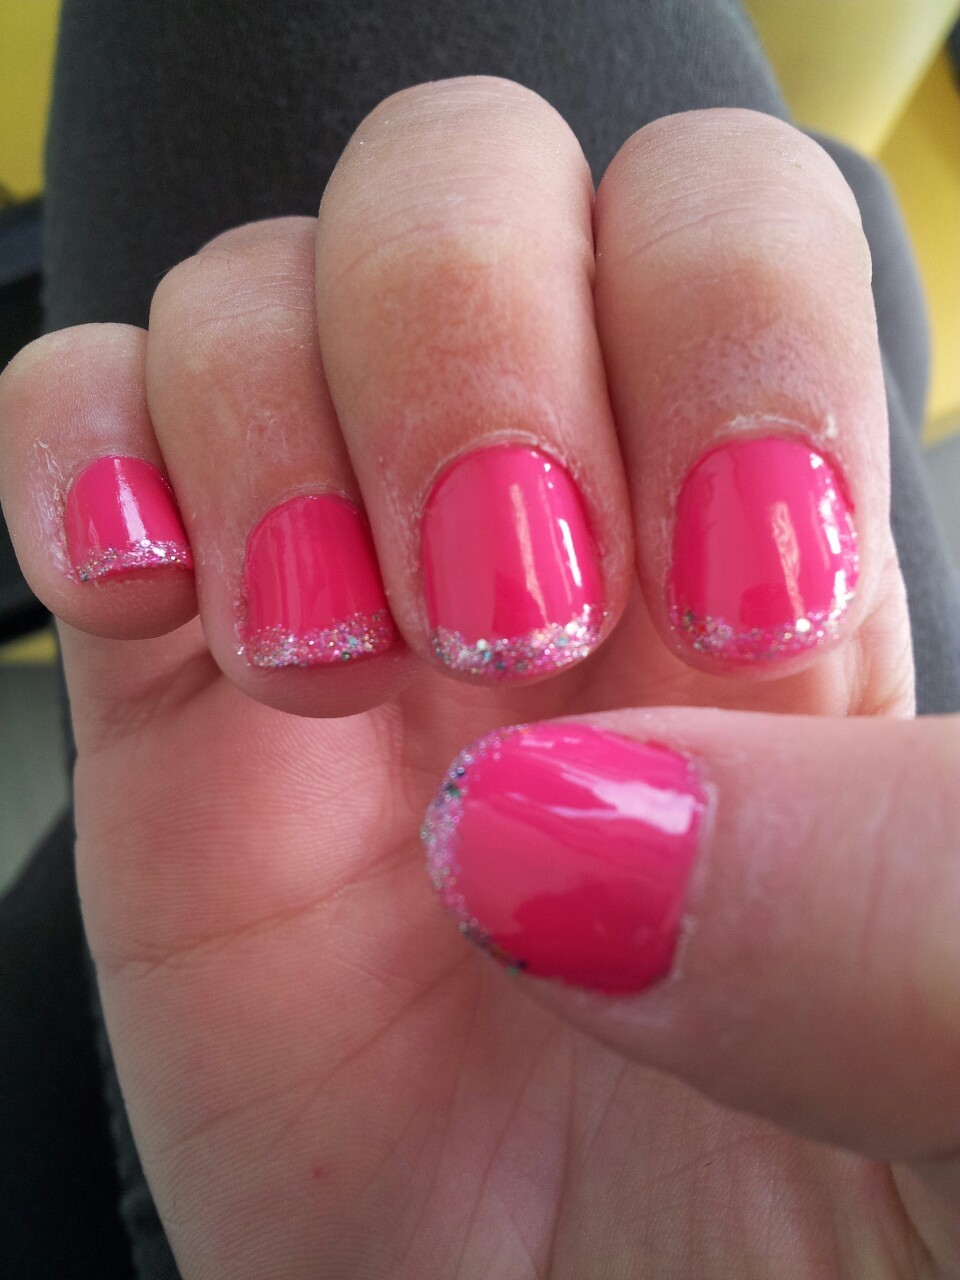 i love these nails didnt last long grr